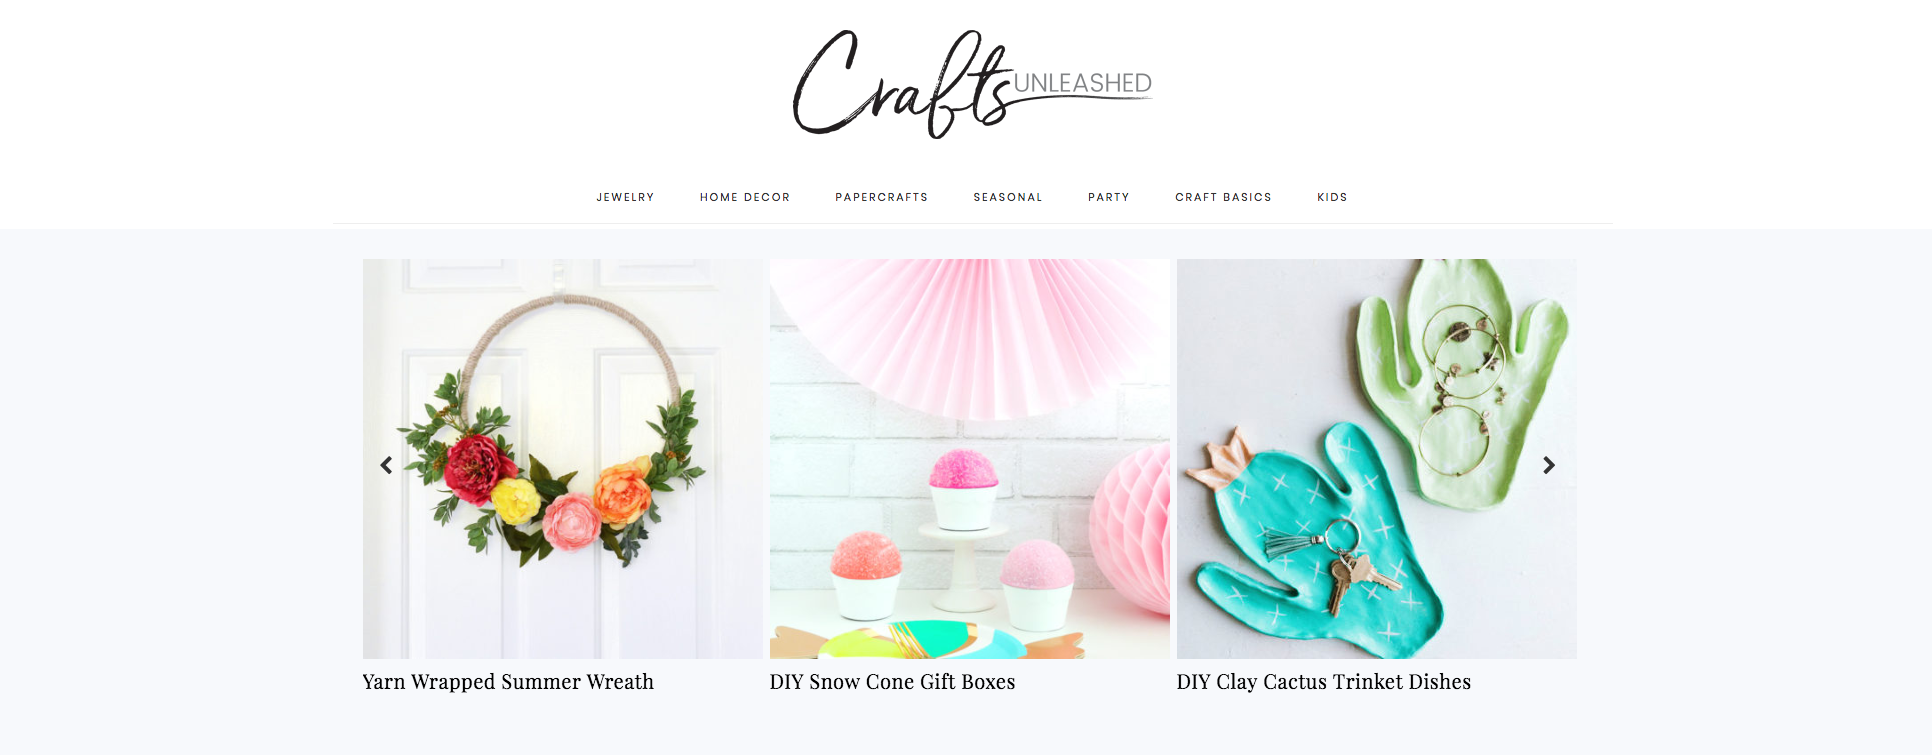 Crafts Unleashed DIY Craft Blogs